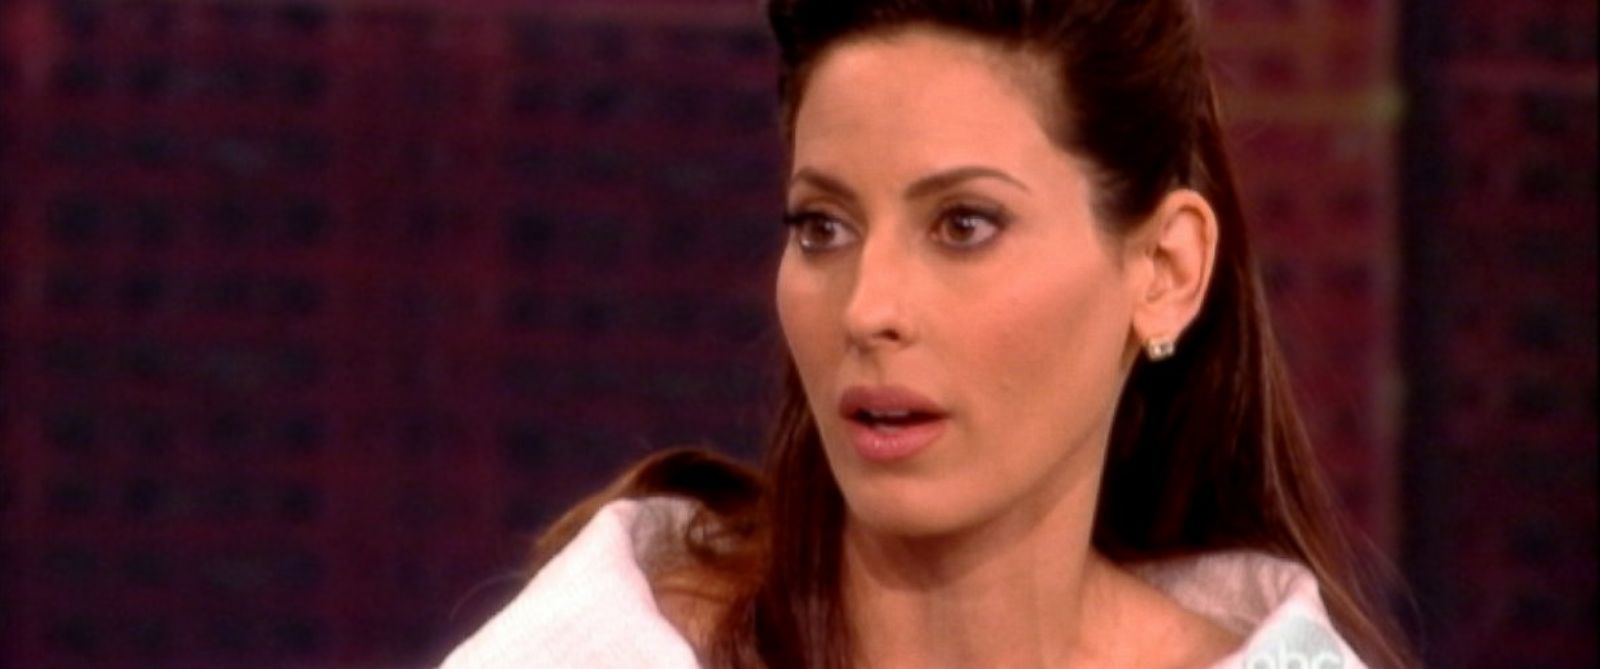 PHOTO: Kerri Kasem, daughter of legendary radio personality Casey Kasem, appears on The View on June 26, 2014.